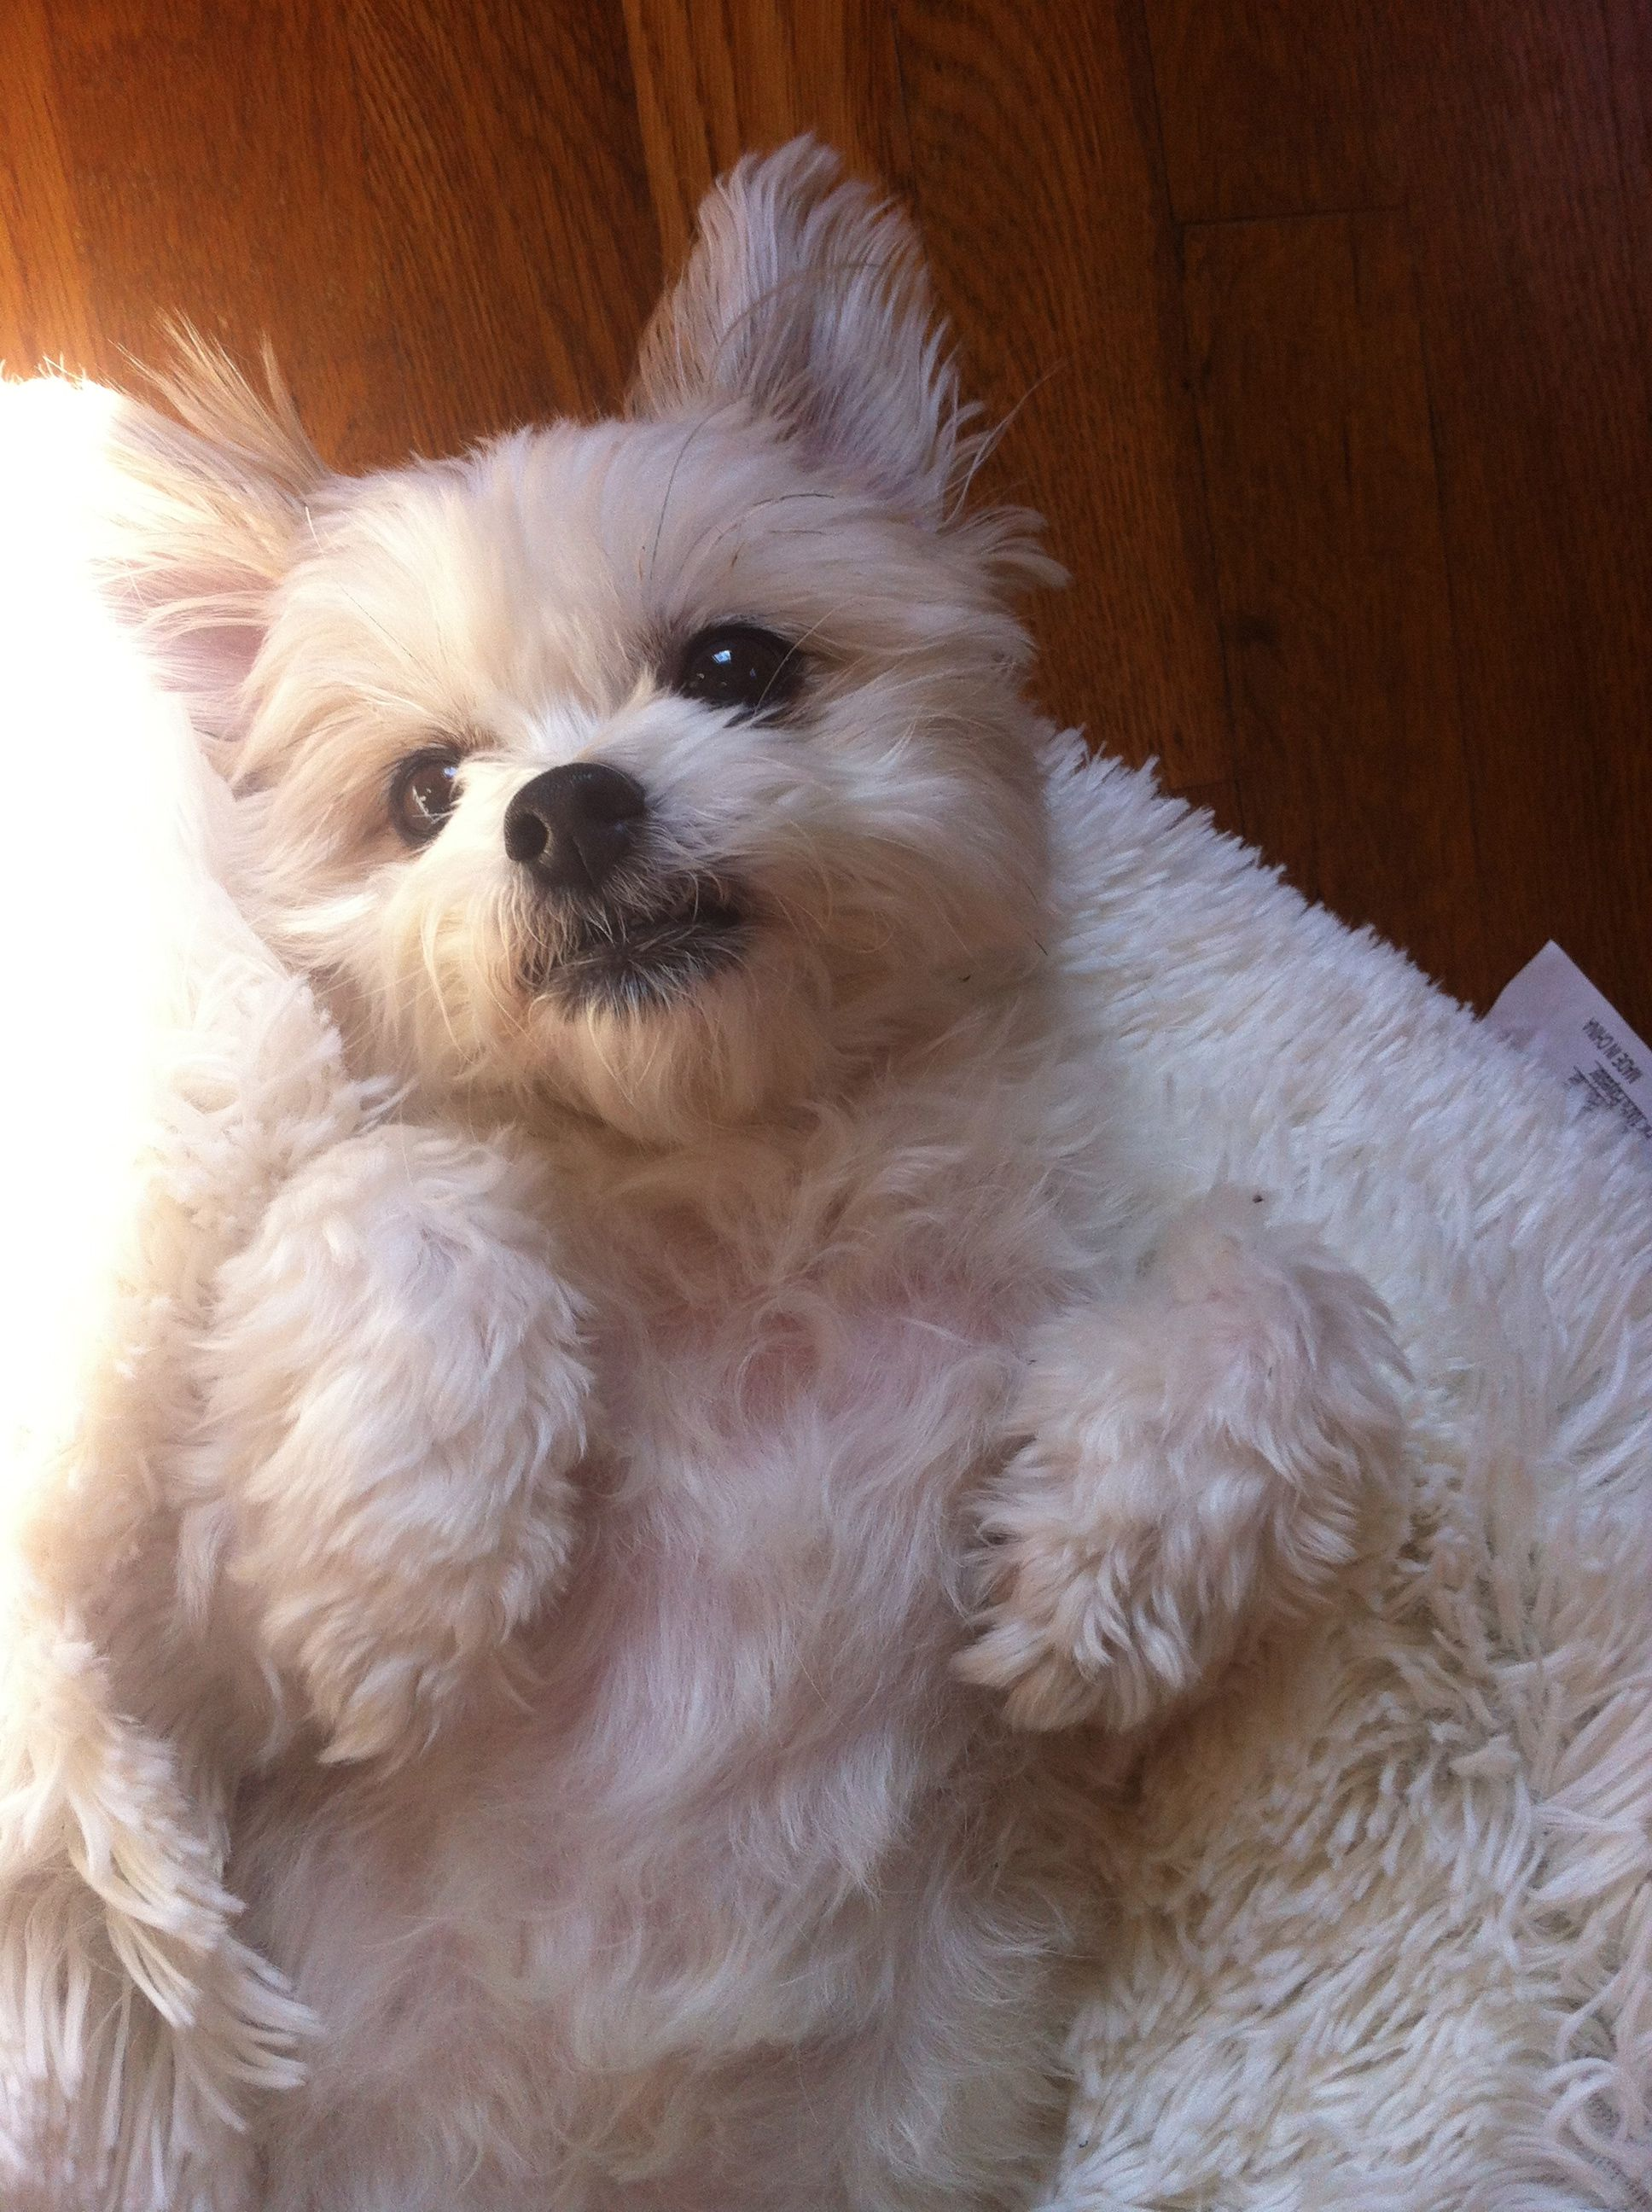 My miki puppy on his fluffy white pillow Cute dogs and